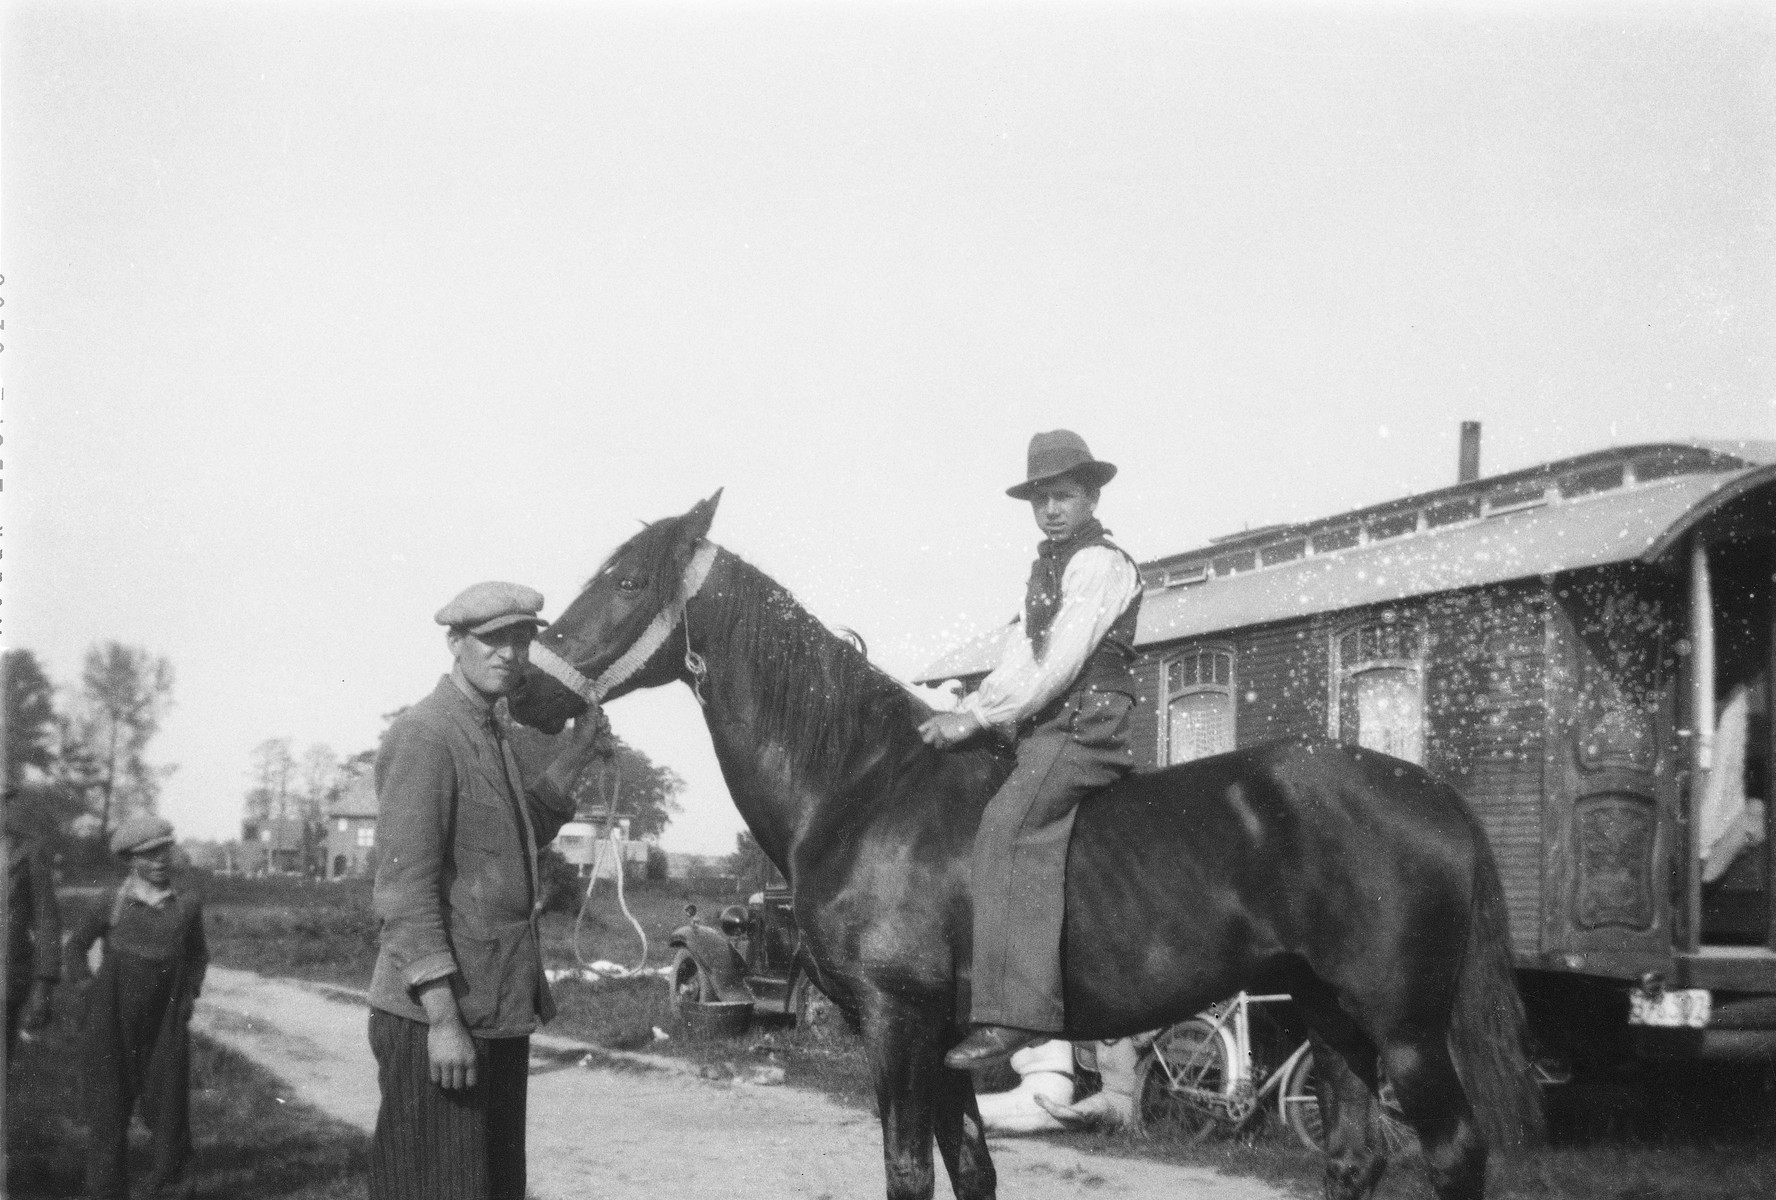 A Romani man holds a horse as Yayal (last name unknown) is seated astride.